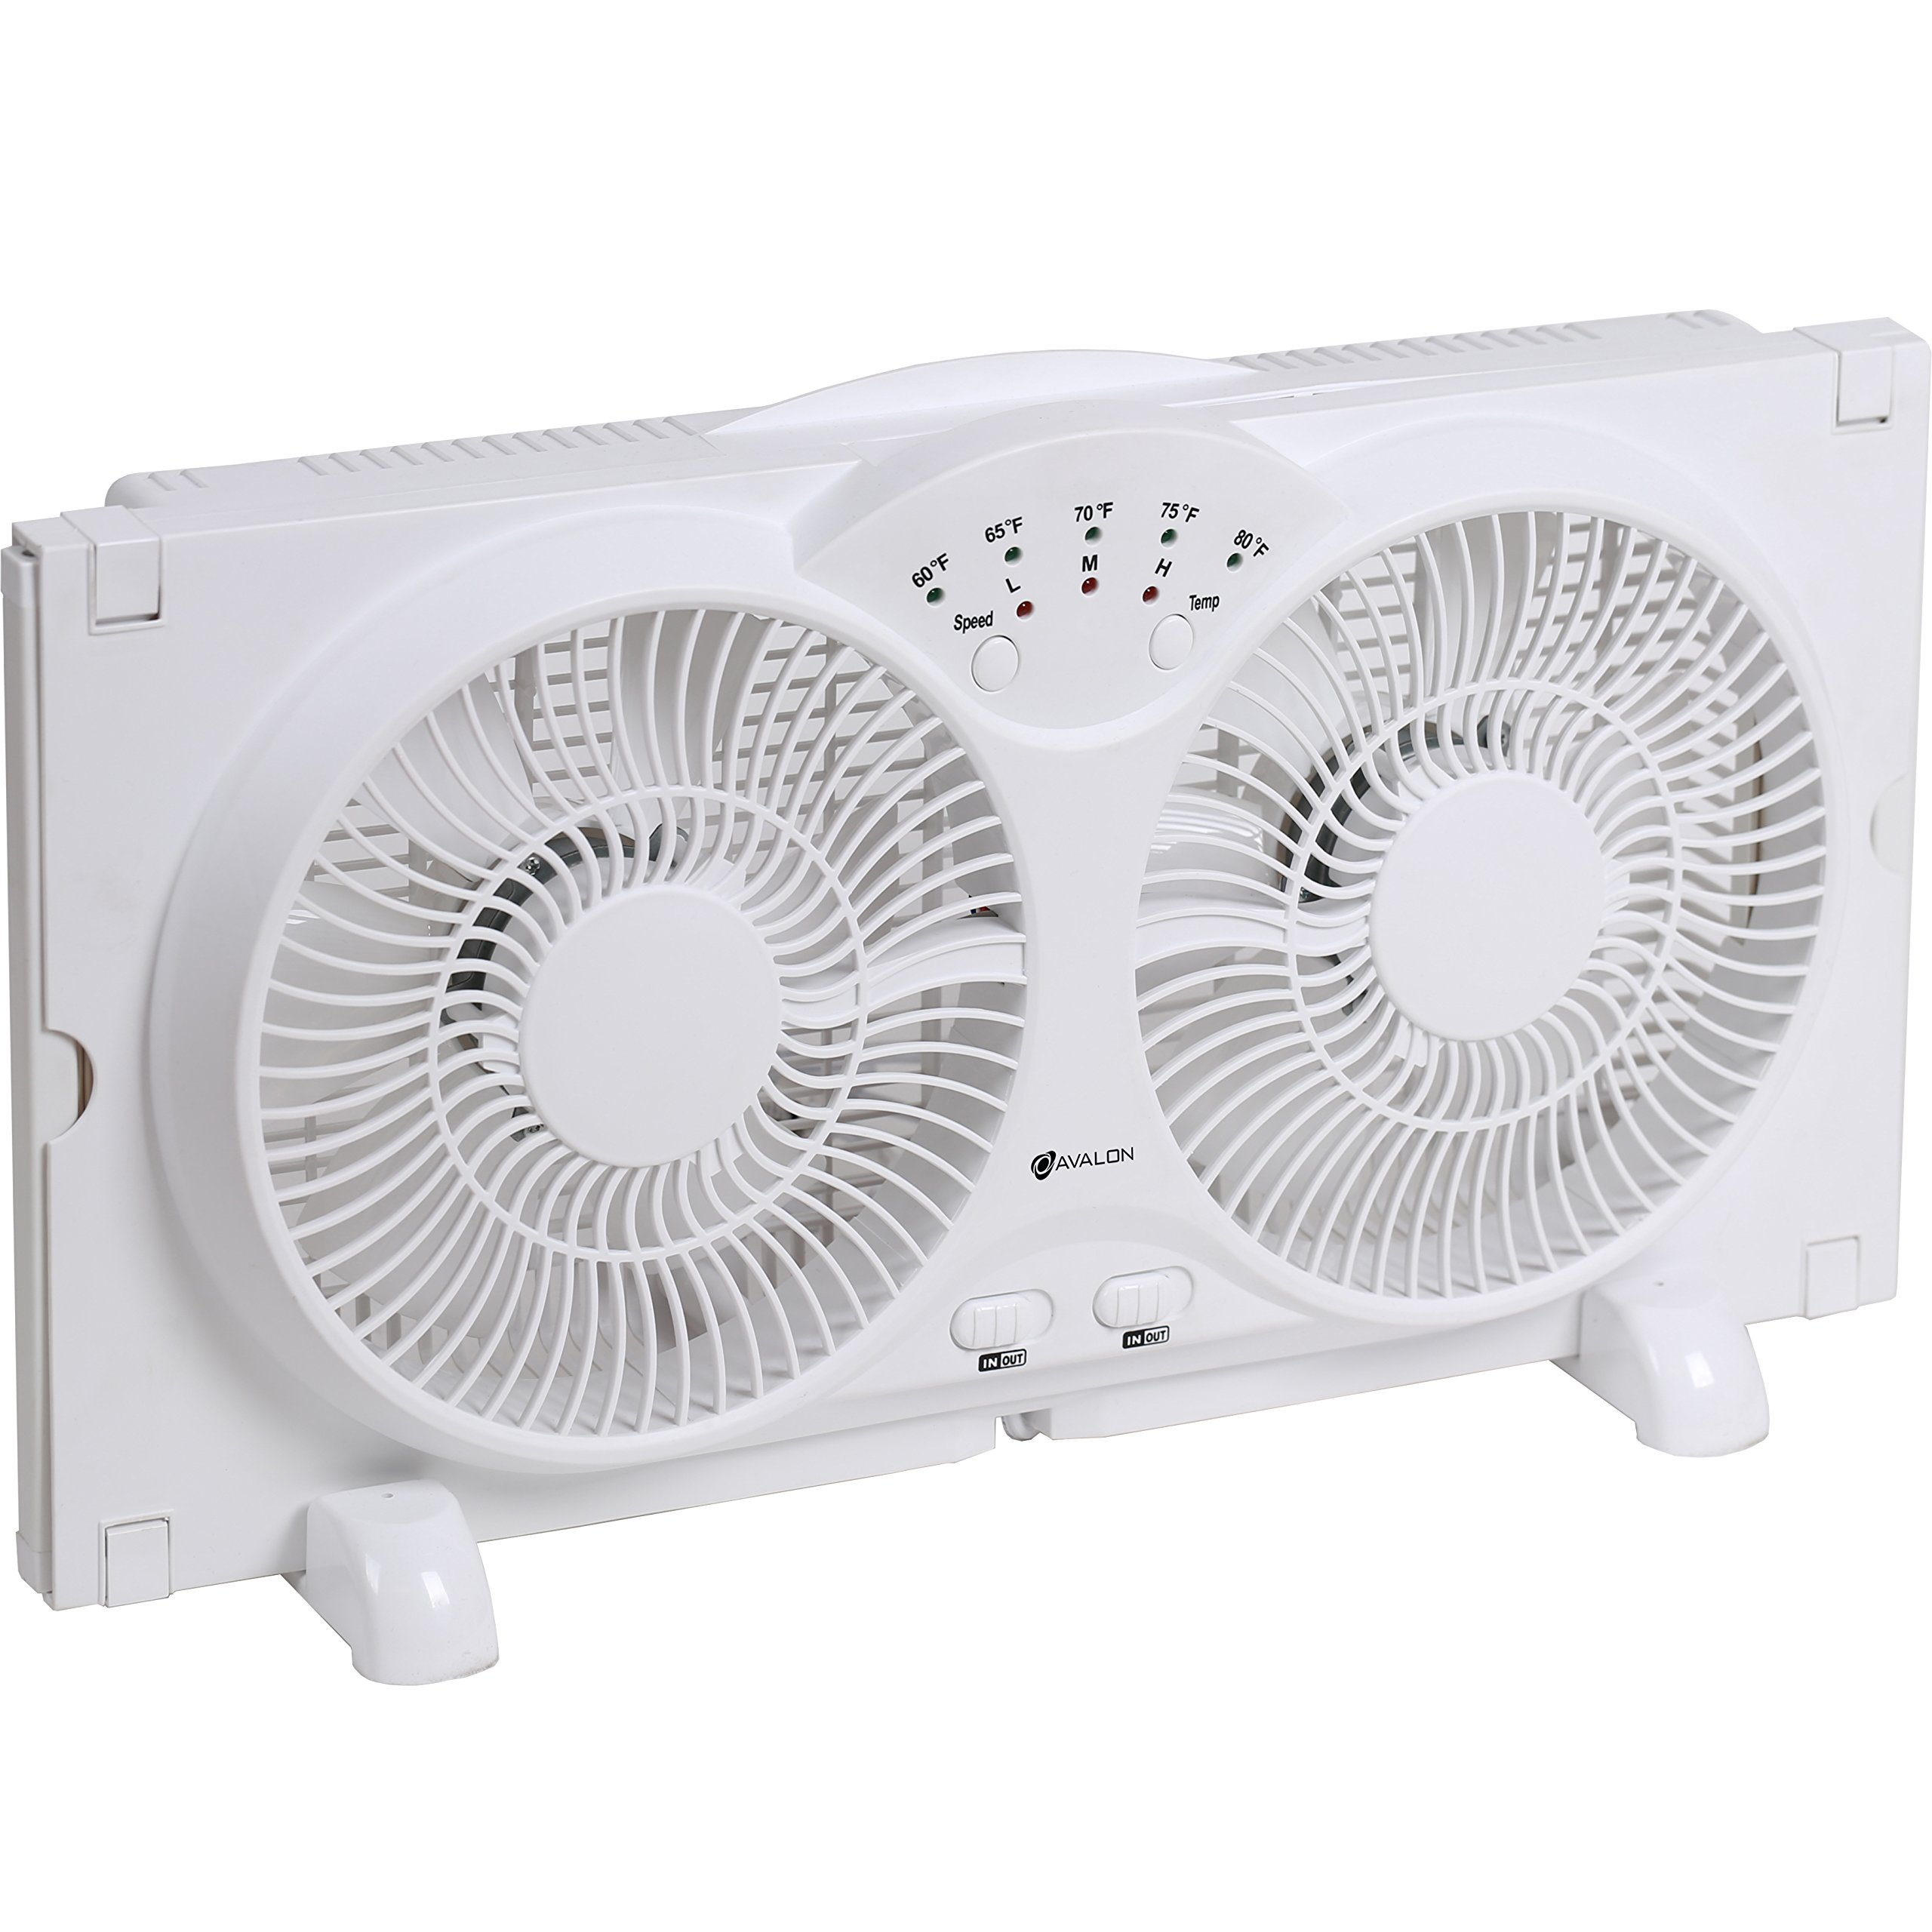 Get Quotations Genesis Twin Window Fan With 9 Inch Blades High Velocity Reversible AirFlow LED